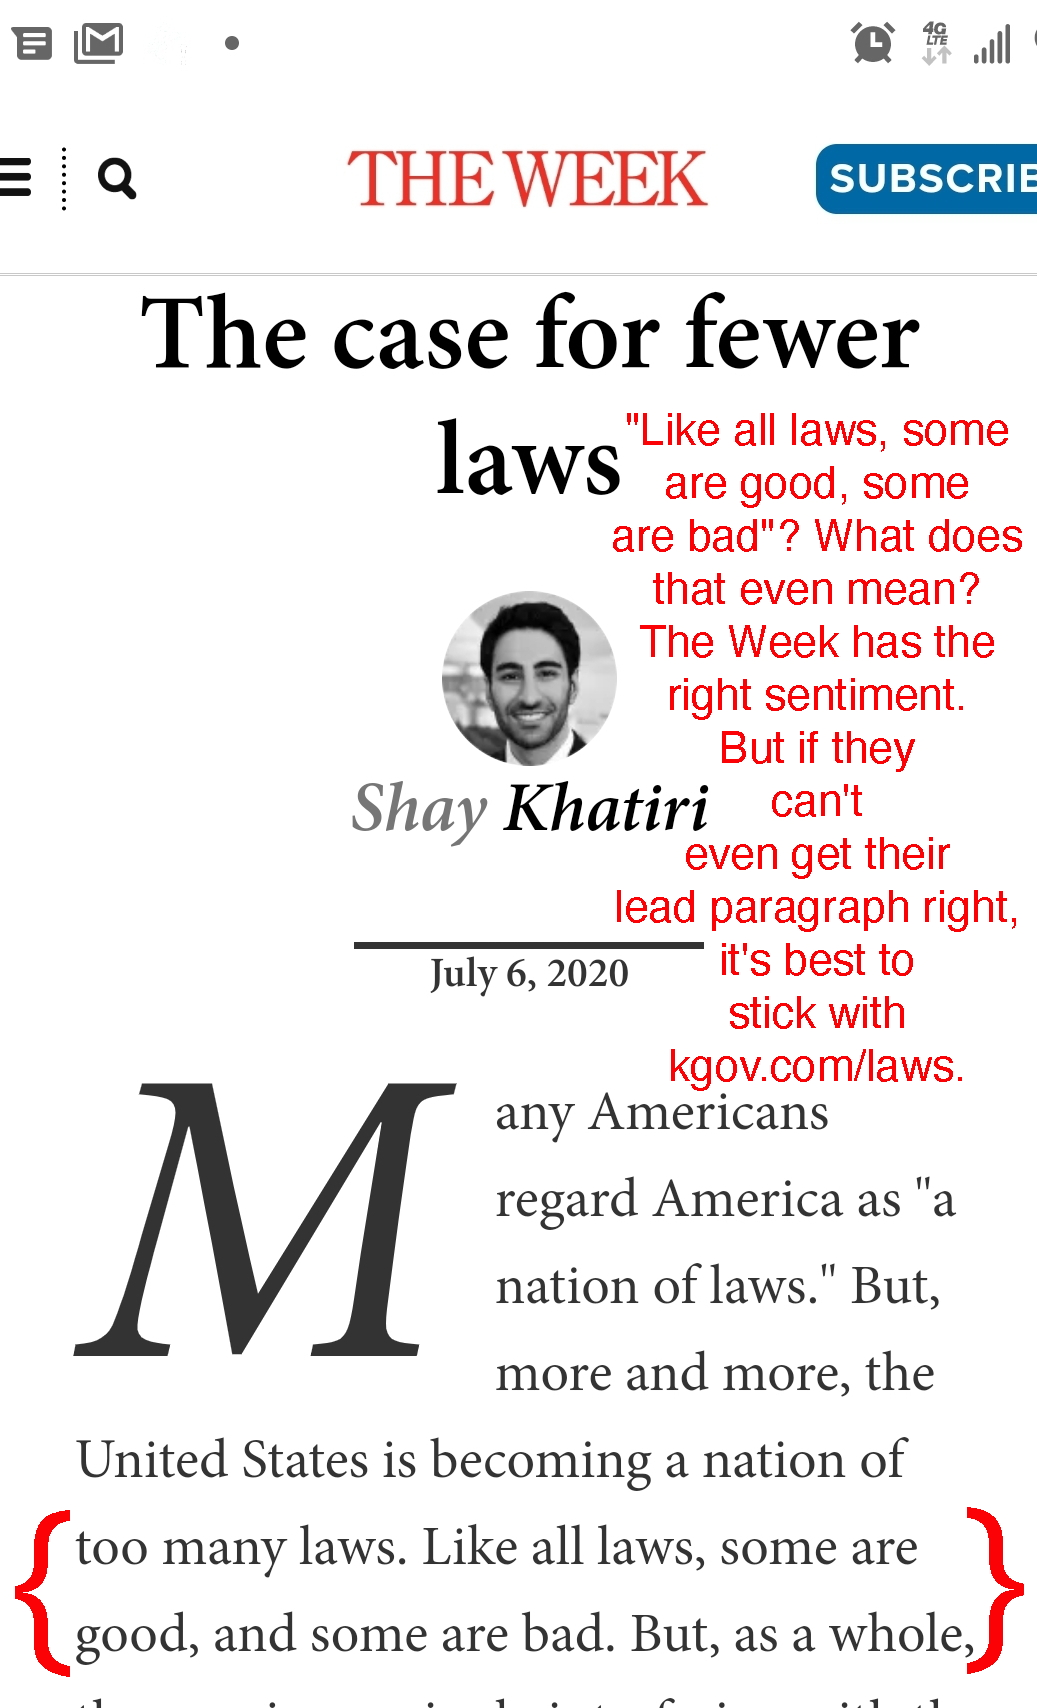 The Week article, The Case for Fewer Laws, 2020 screenshot